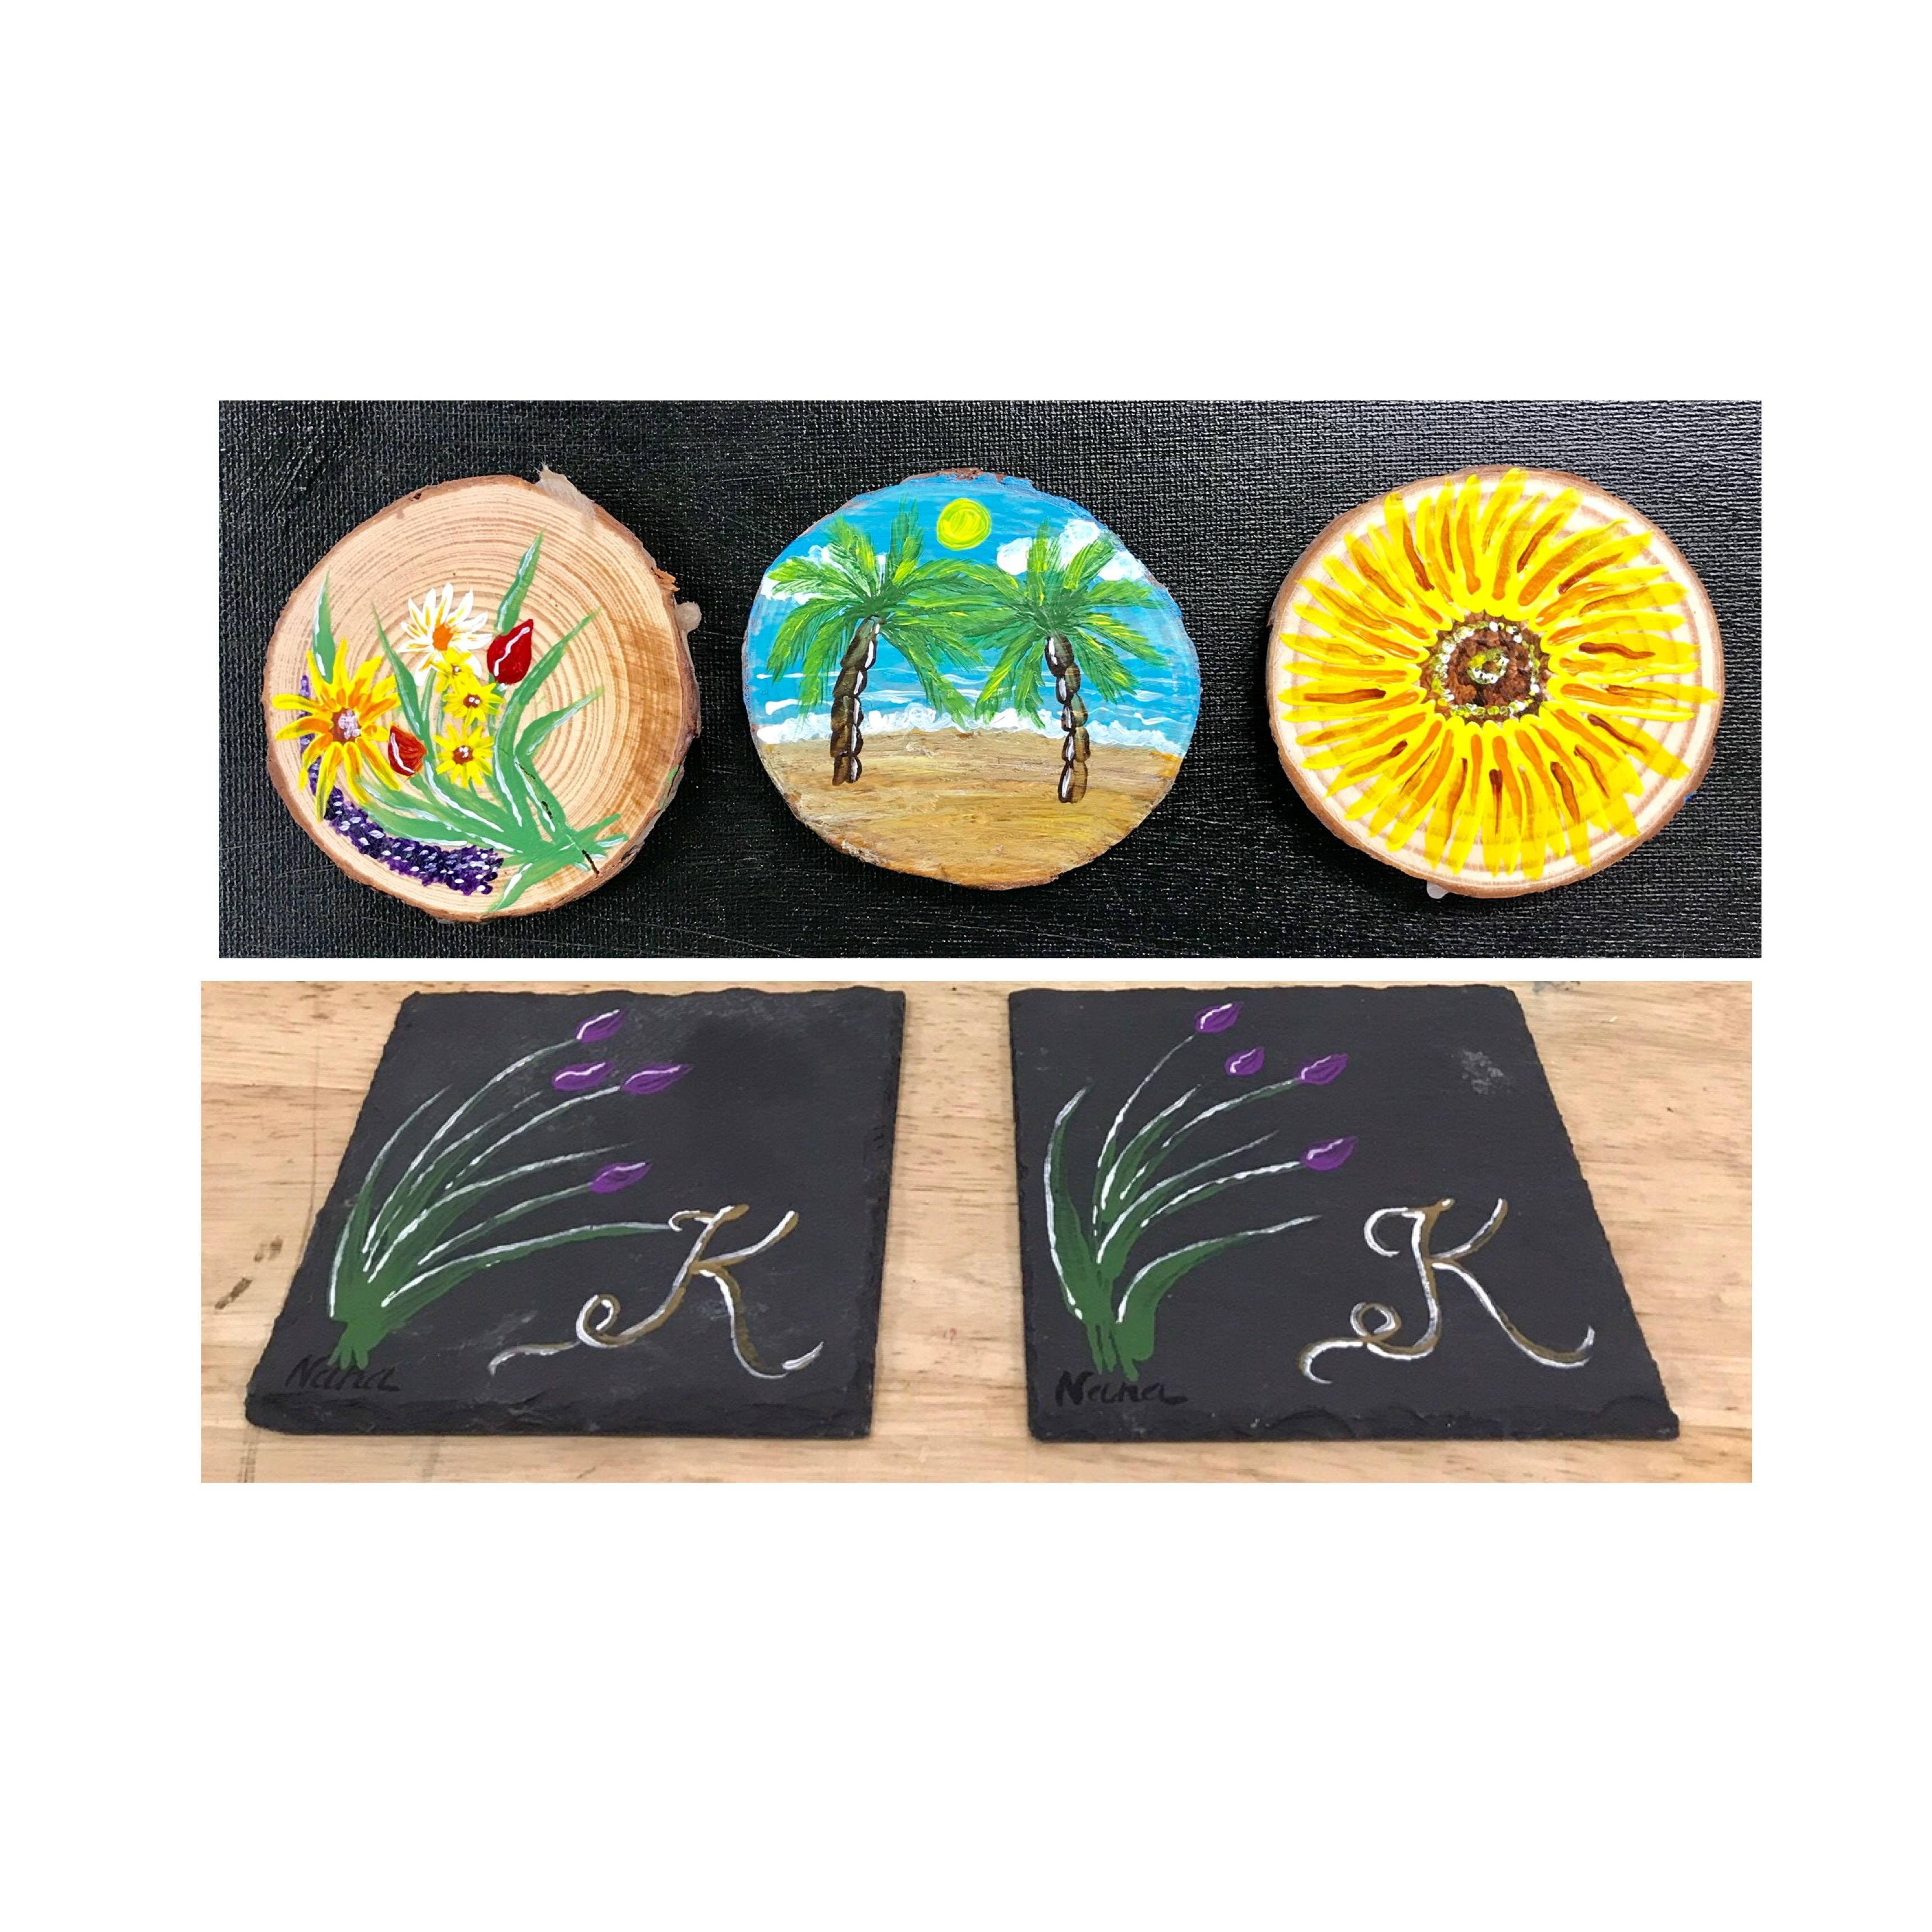 Adult Open Paint Yrs Create Your Own Coasters Slate Or Wood - Create coasters from photos